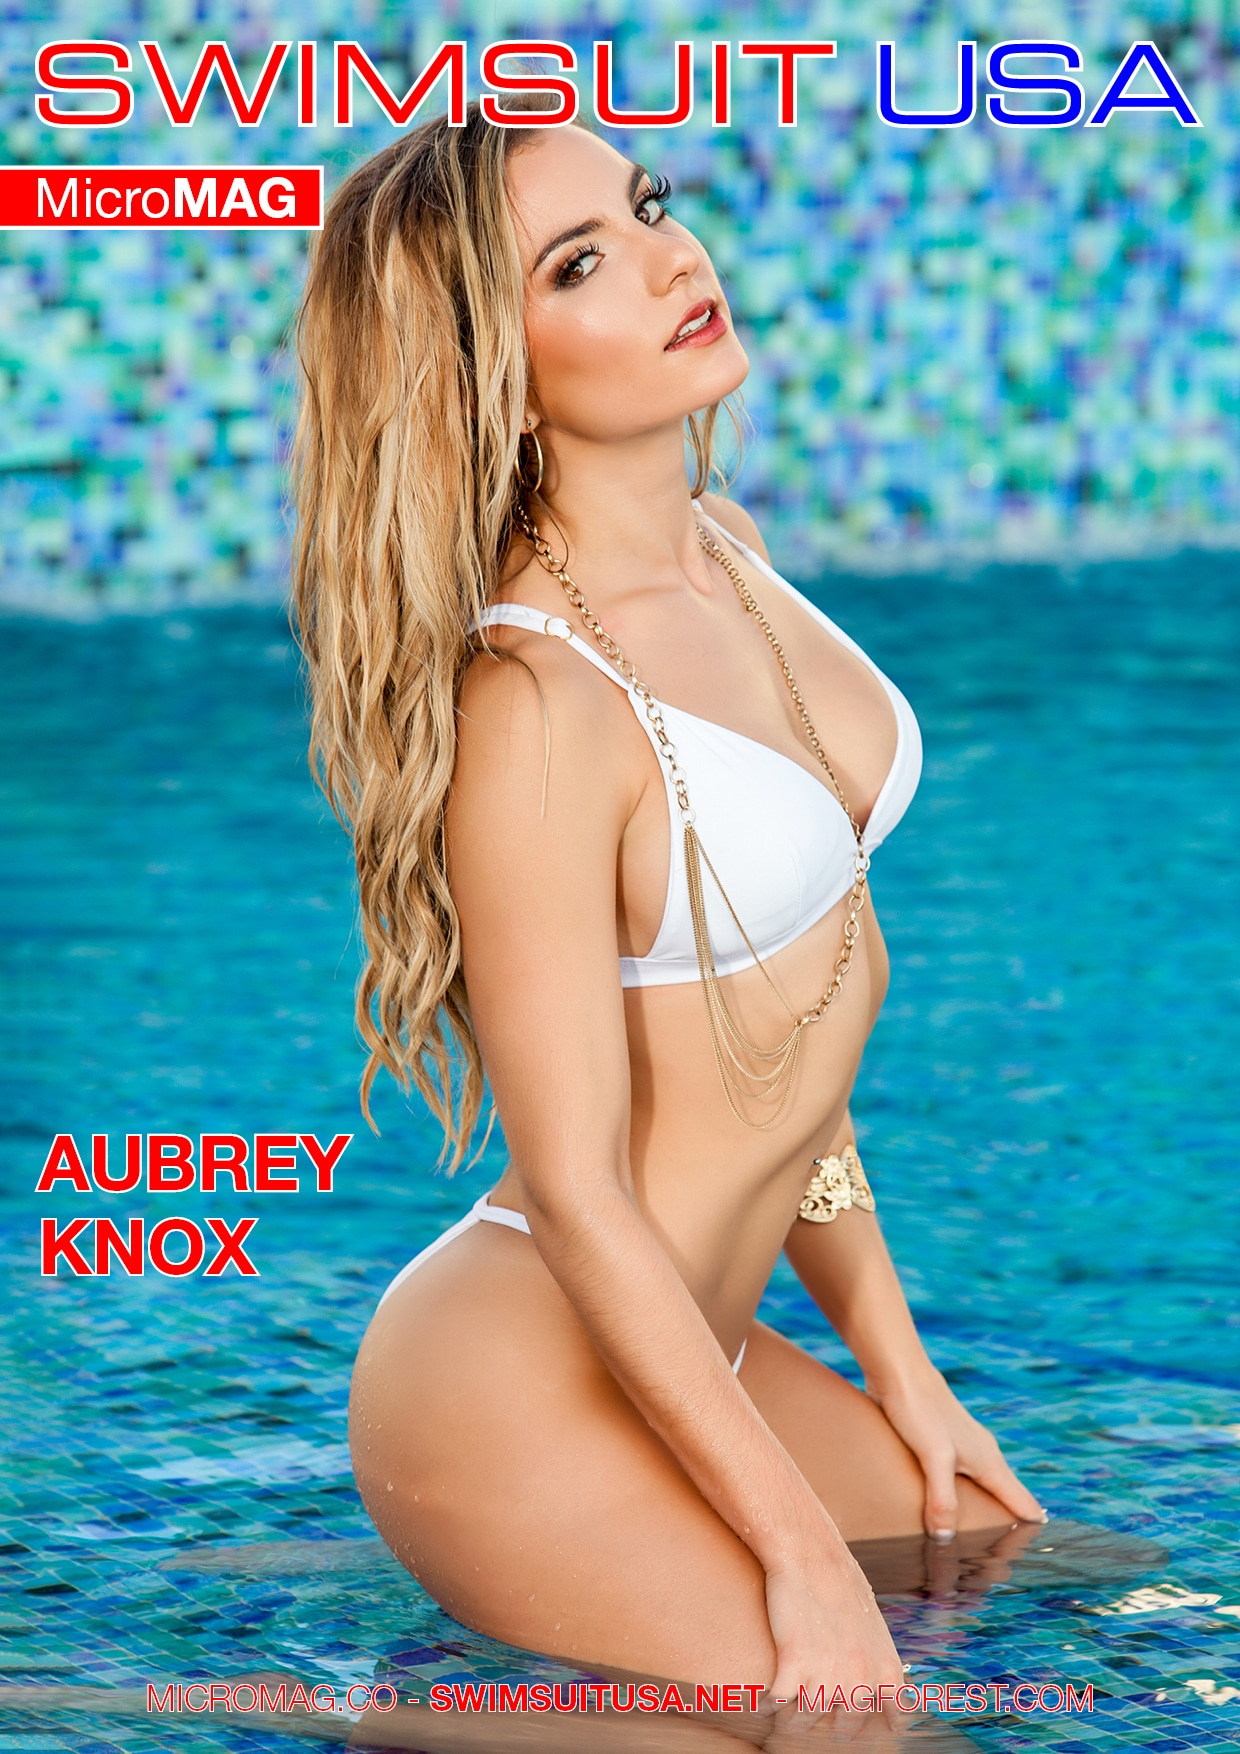 Swimsuit Usa Micromag – Aubrey Knox – Issue 2